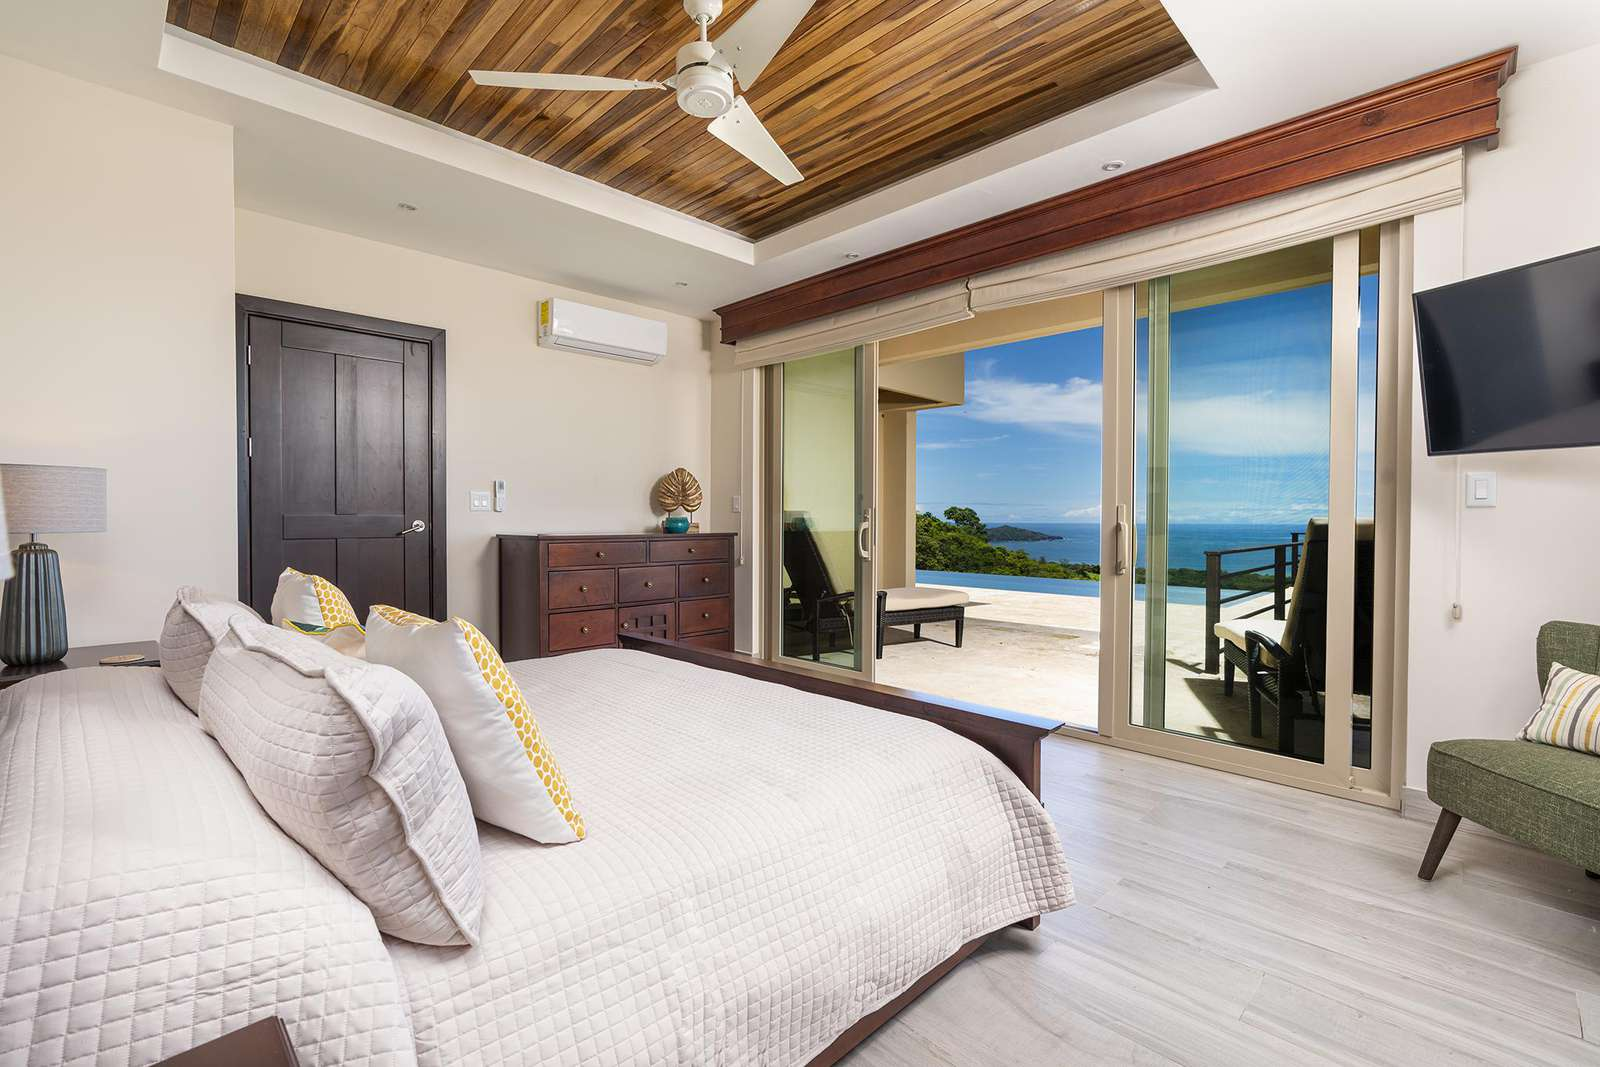 Master Suite #2, main level, king bed, Smart TV, private full bathroom, ocean views, access to pool and terrace areas